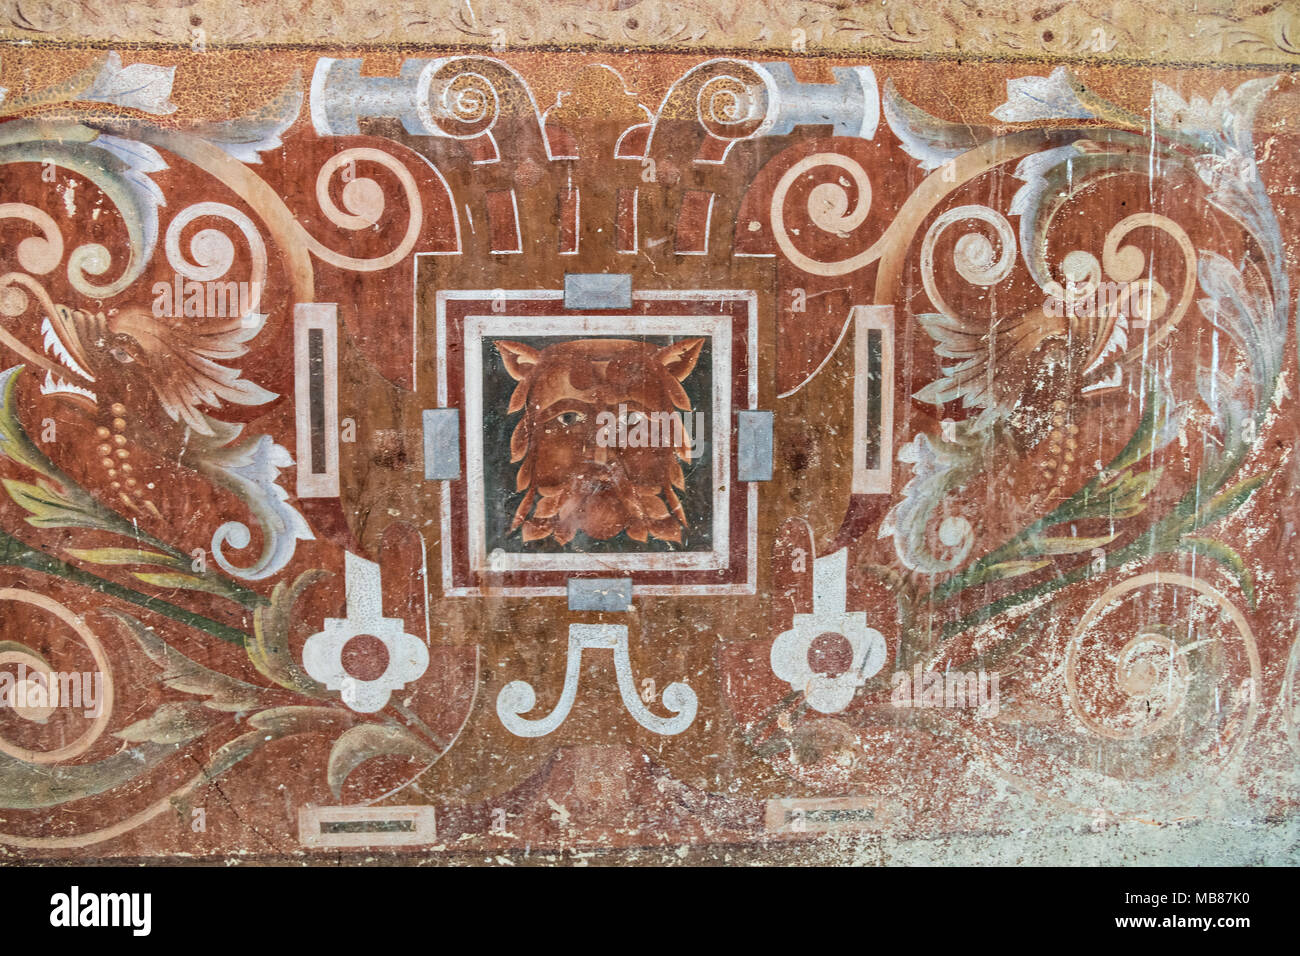 View of hand painted wallpaper in the derelict and fading Hacienda de Jaral de Berrio in Jaral de Berrios, Guanajuato, Mexico. The abandoned Jaral de Berrio hacienda was once the largest in Mexico and housed over 6,000 people on the property and is credited with creating Mescal. - Stock Image